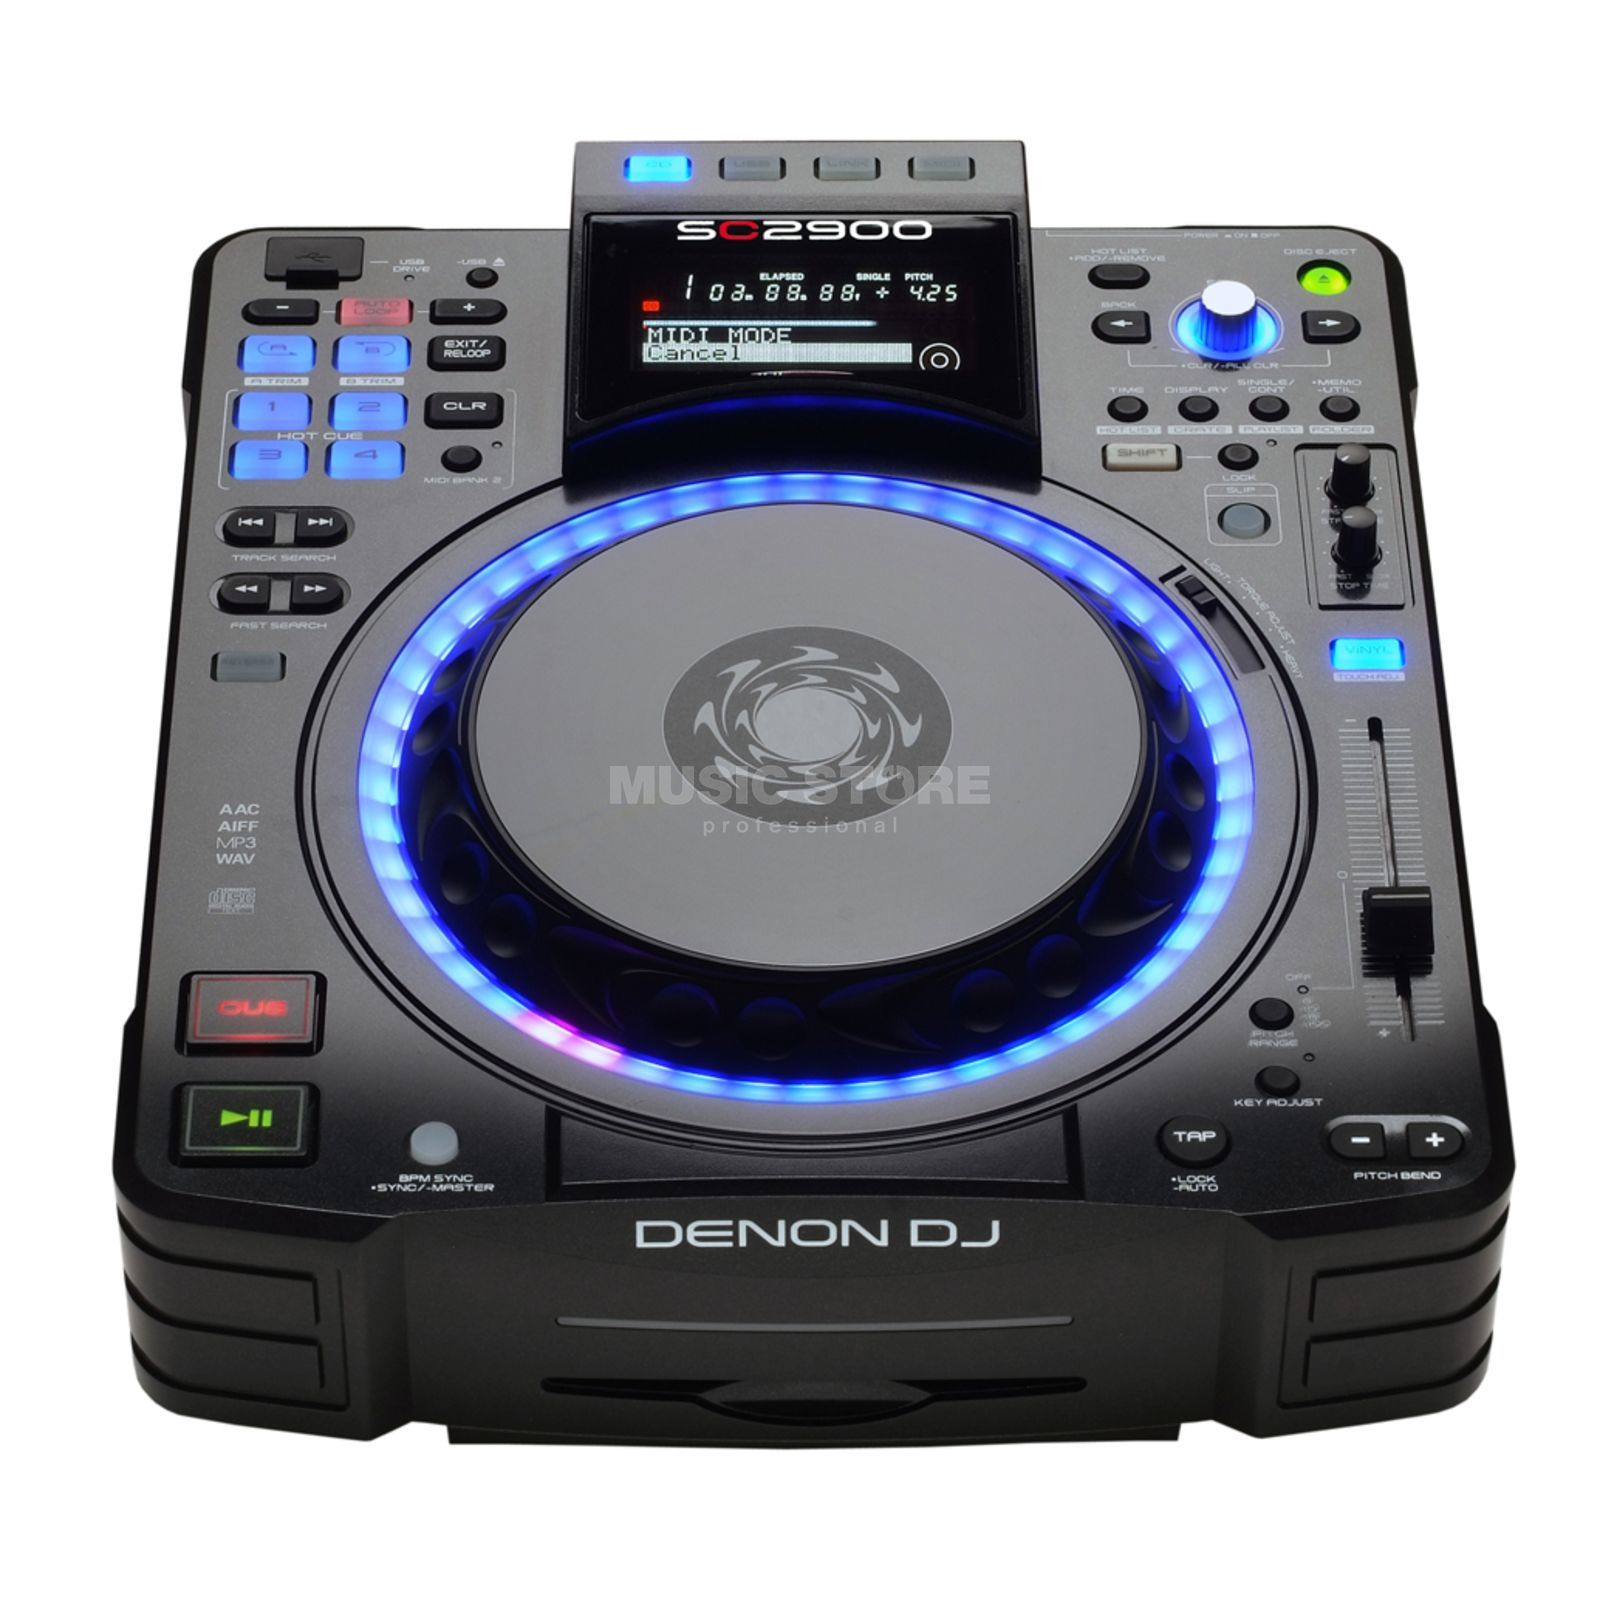 Denon DJ DN-SC2900 Controller & Media Player Productafbeelding